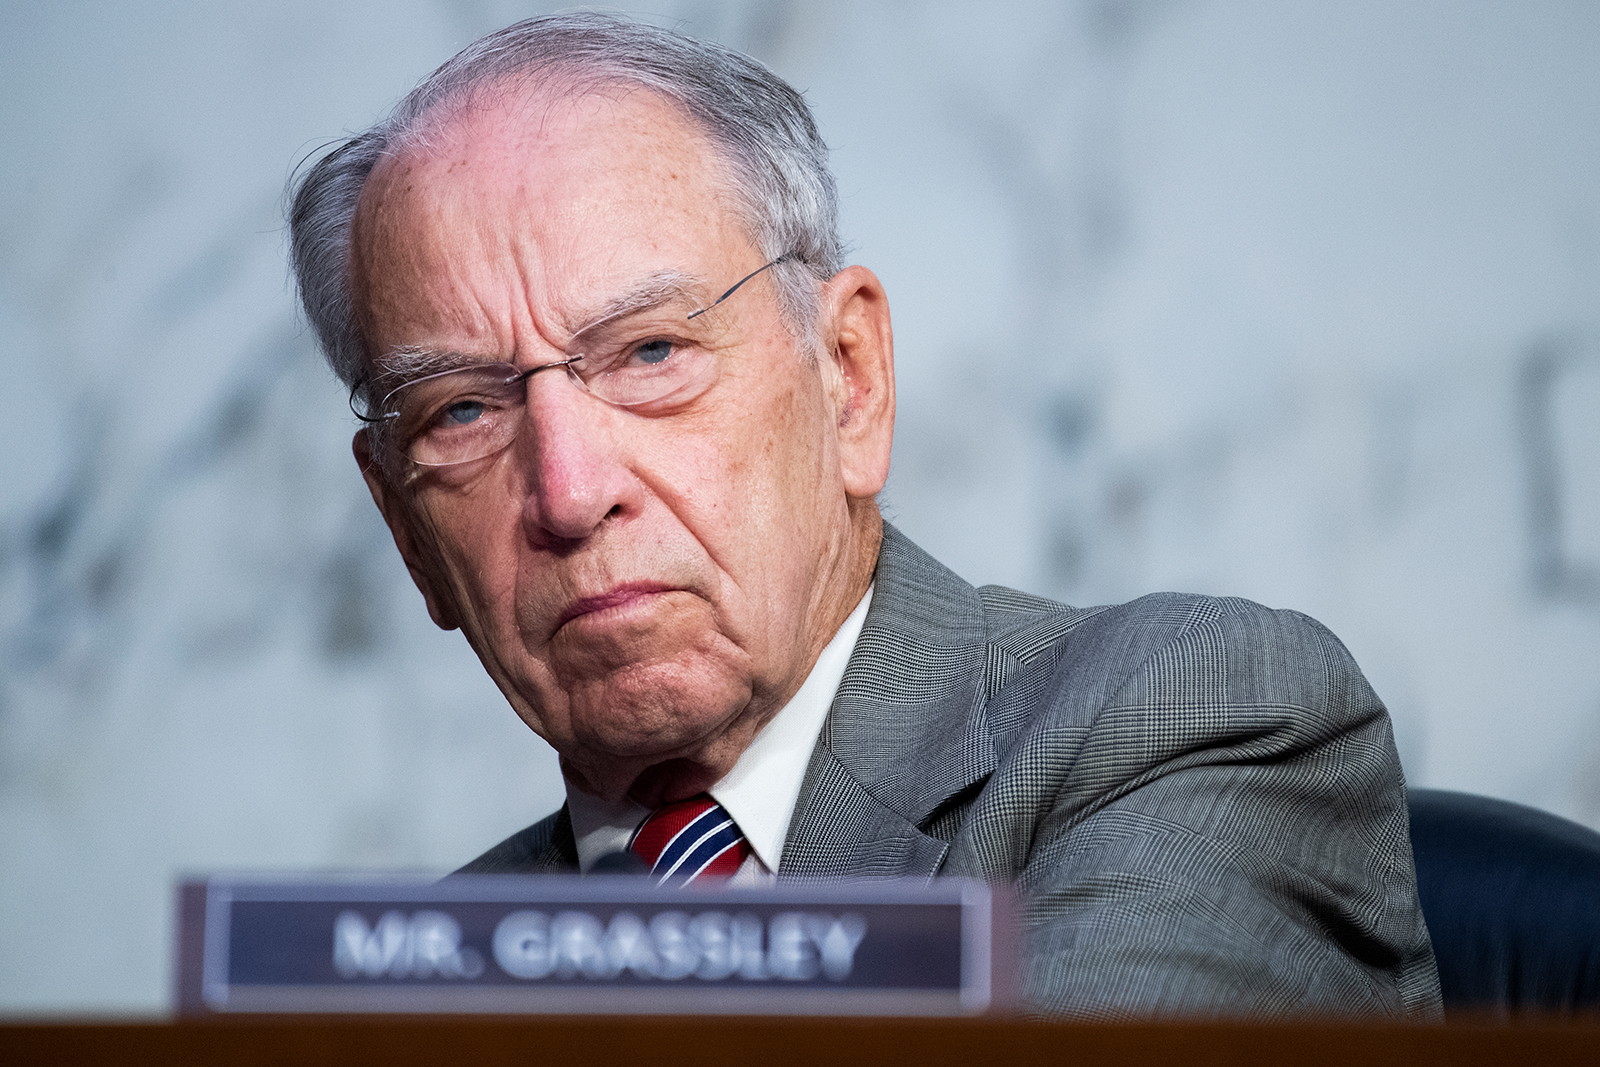 Grassley returns to Senate office after testing positive for Covid-19